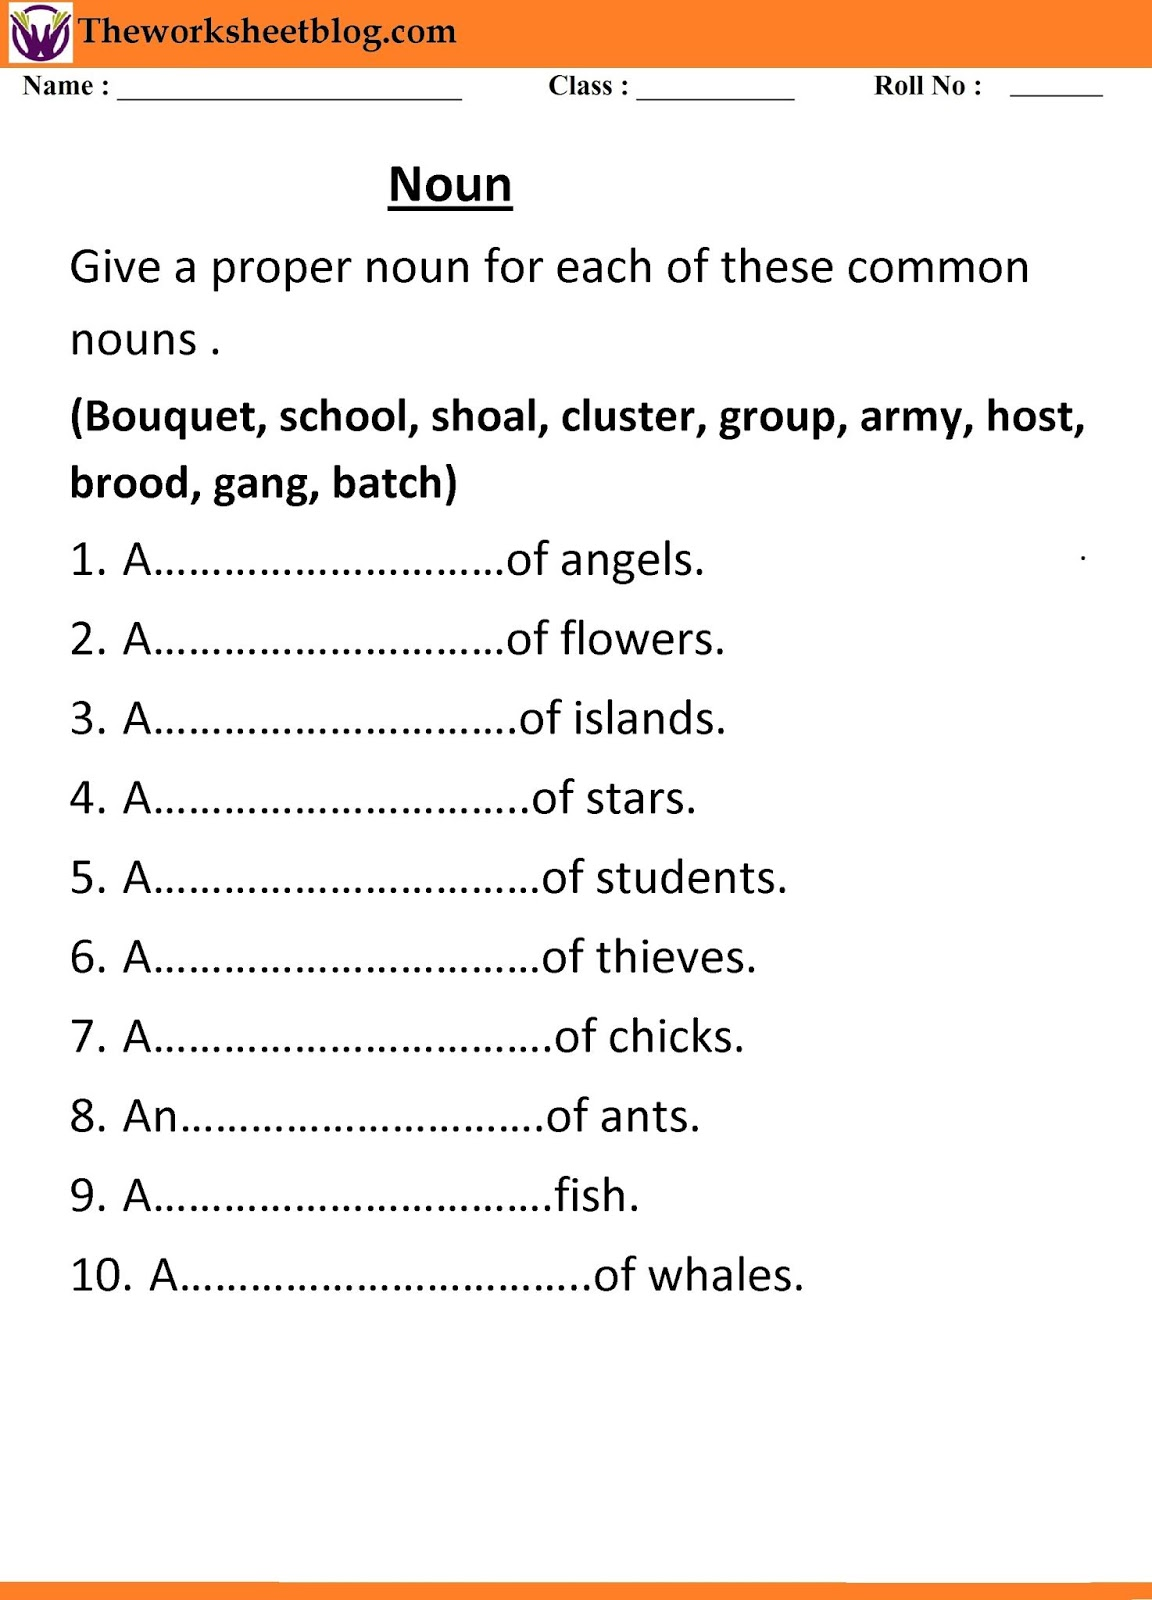 Noun Worksheets For Grade 1 And 2